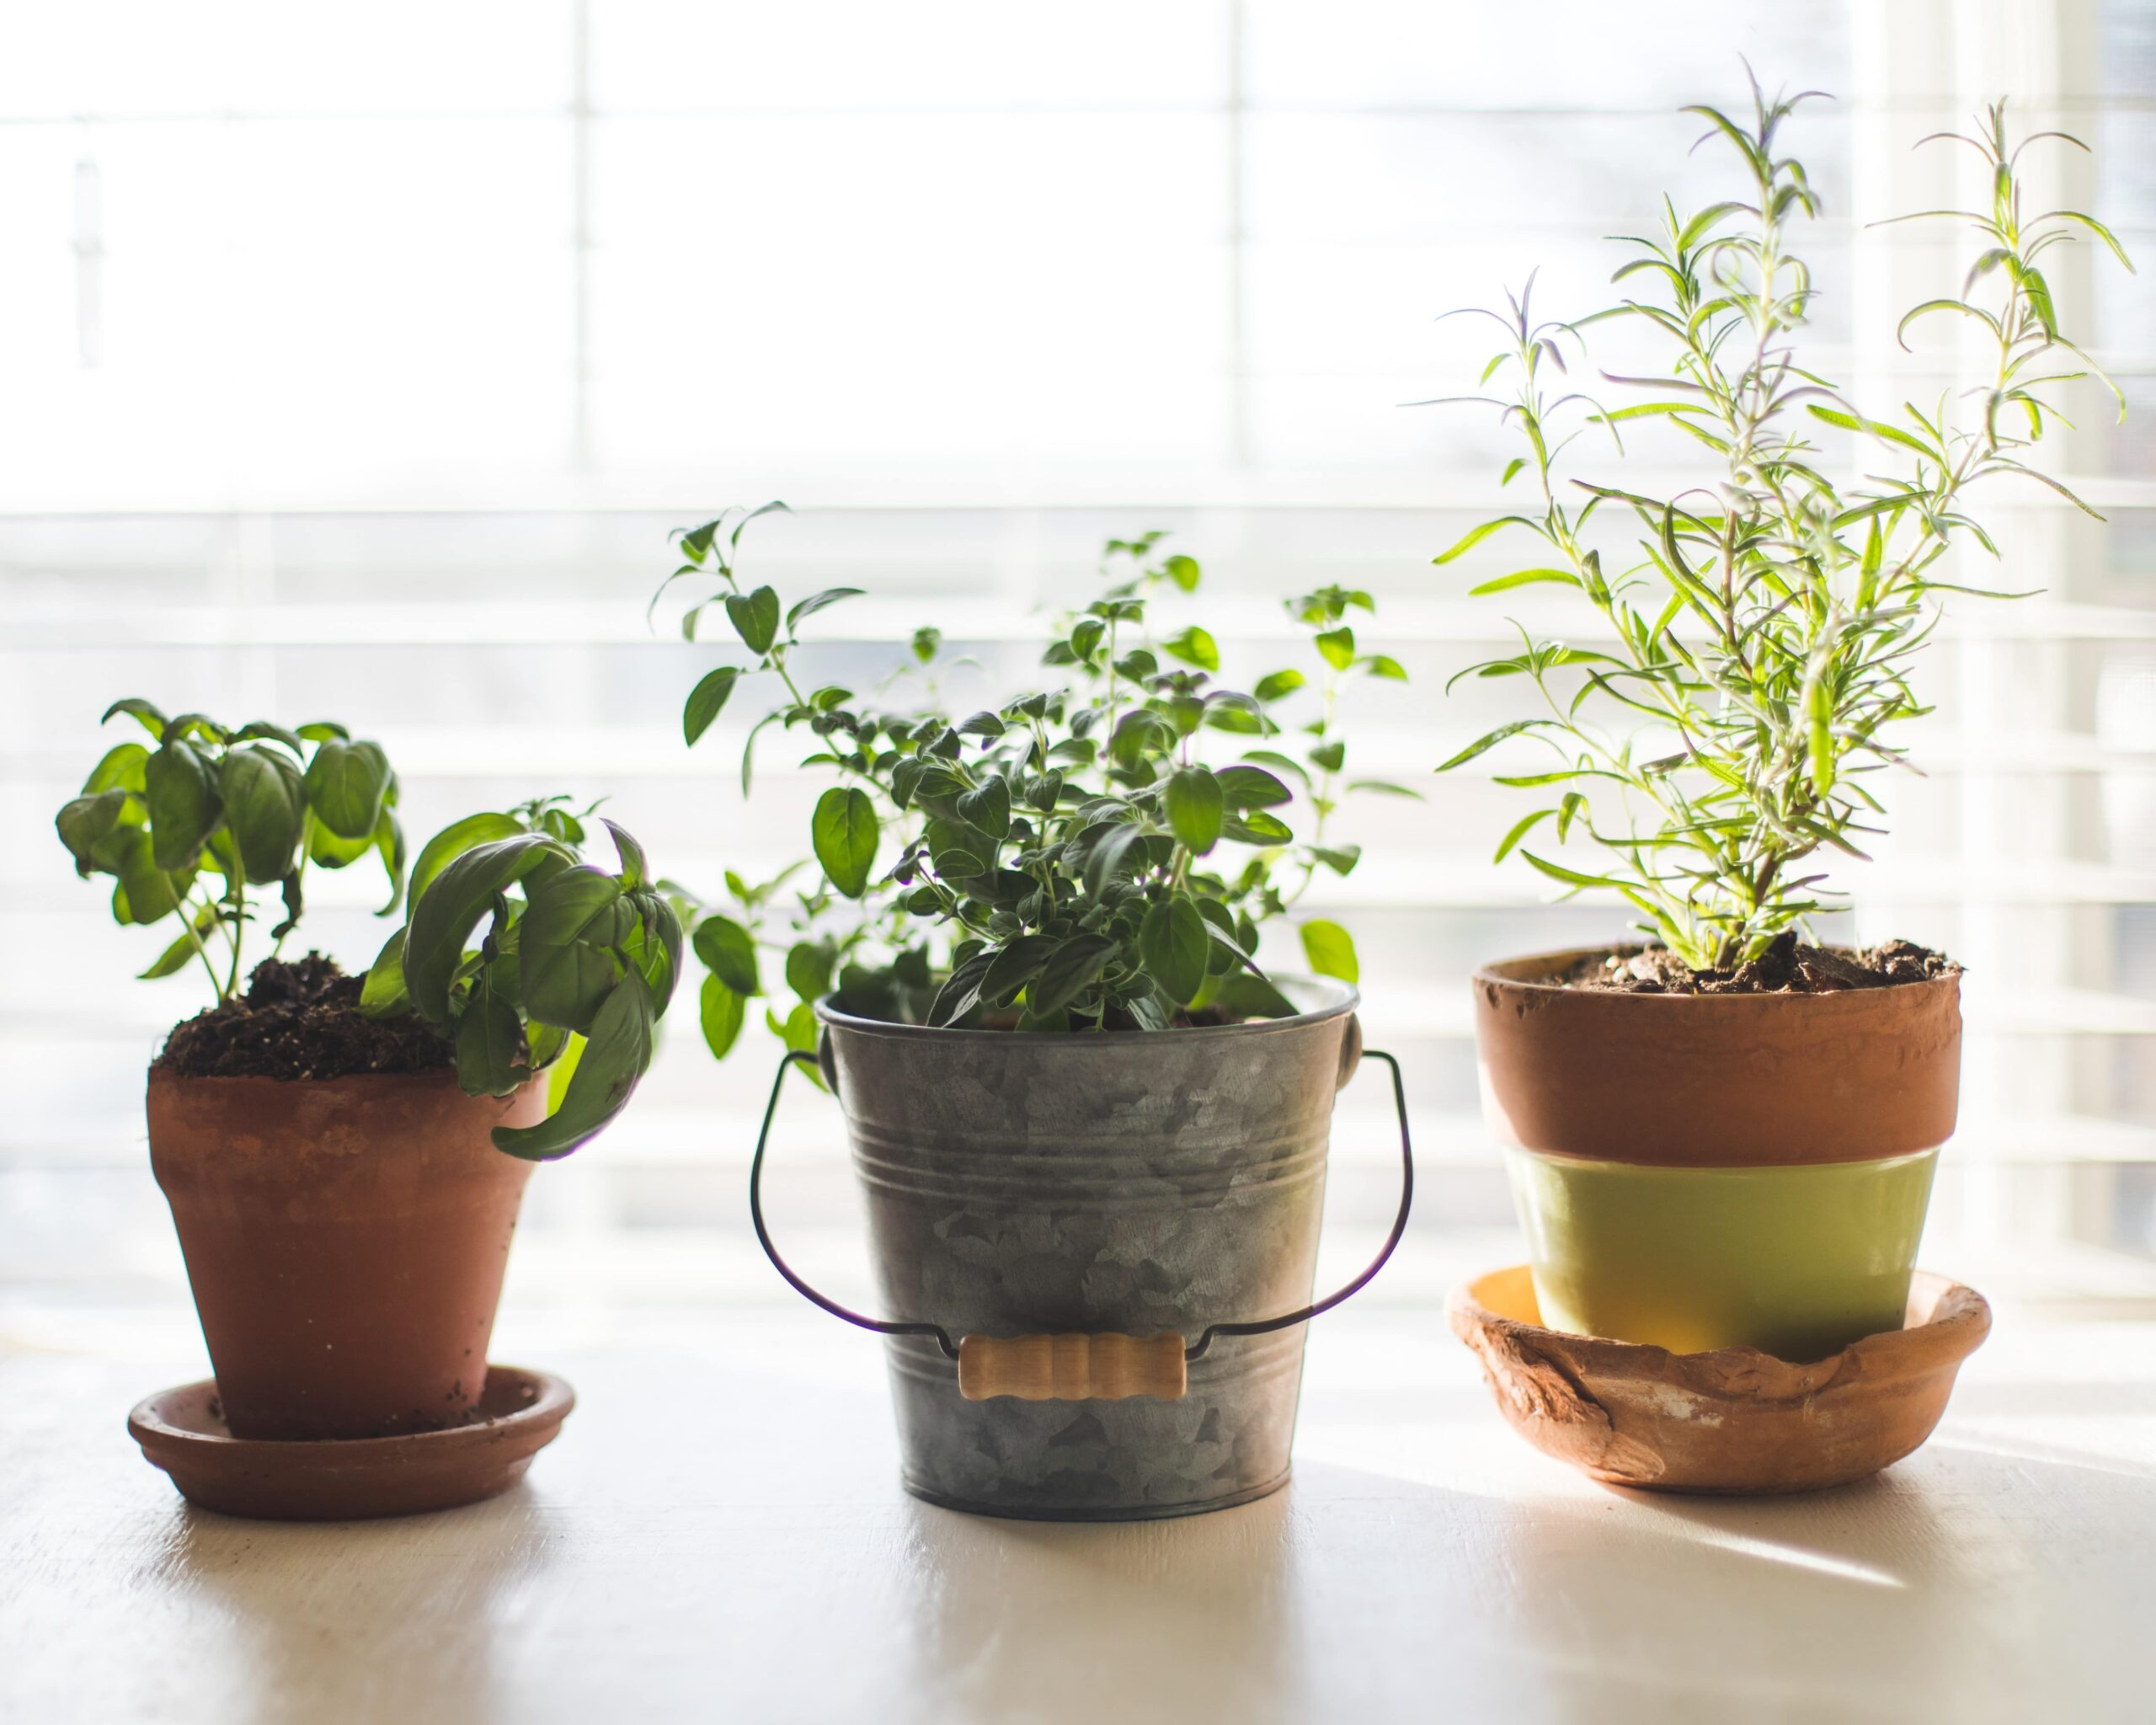 Plants In Pots (Successful Indoor Gardening)